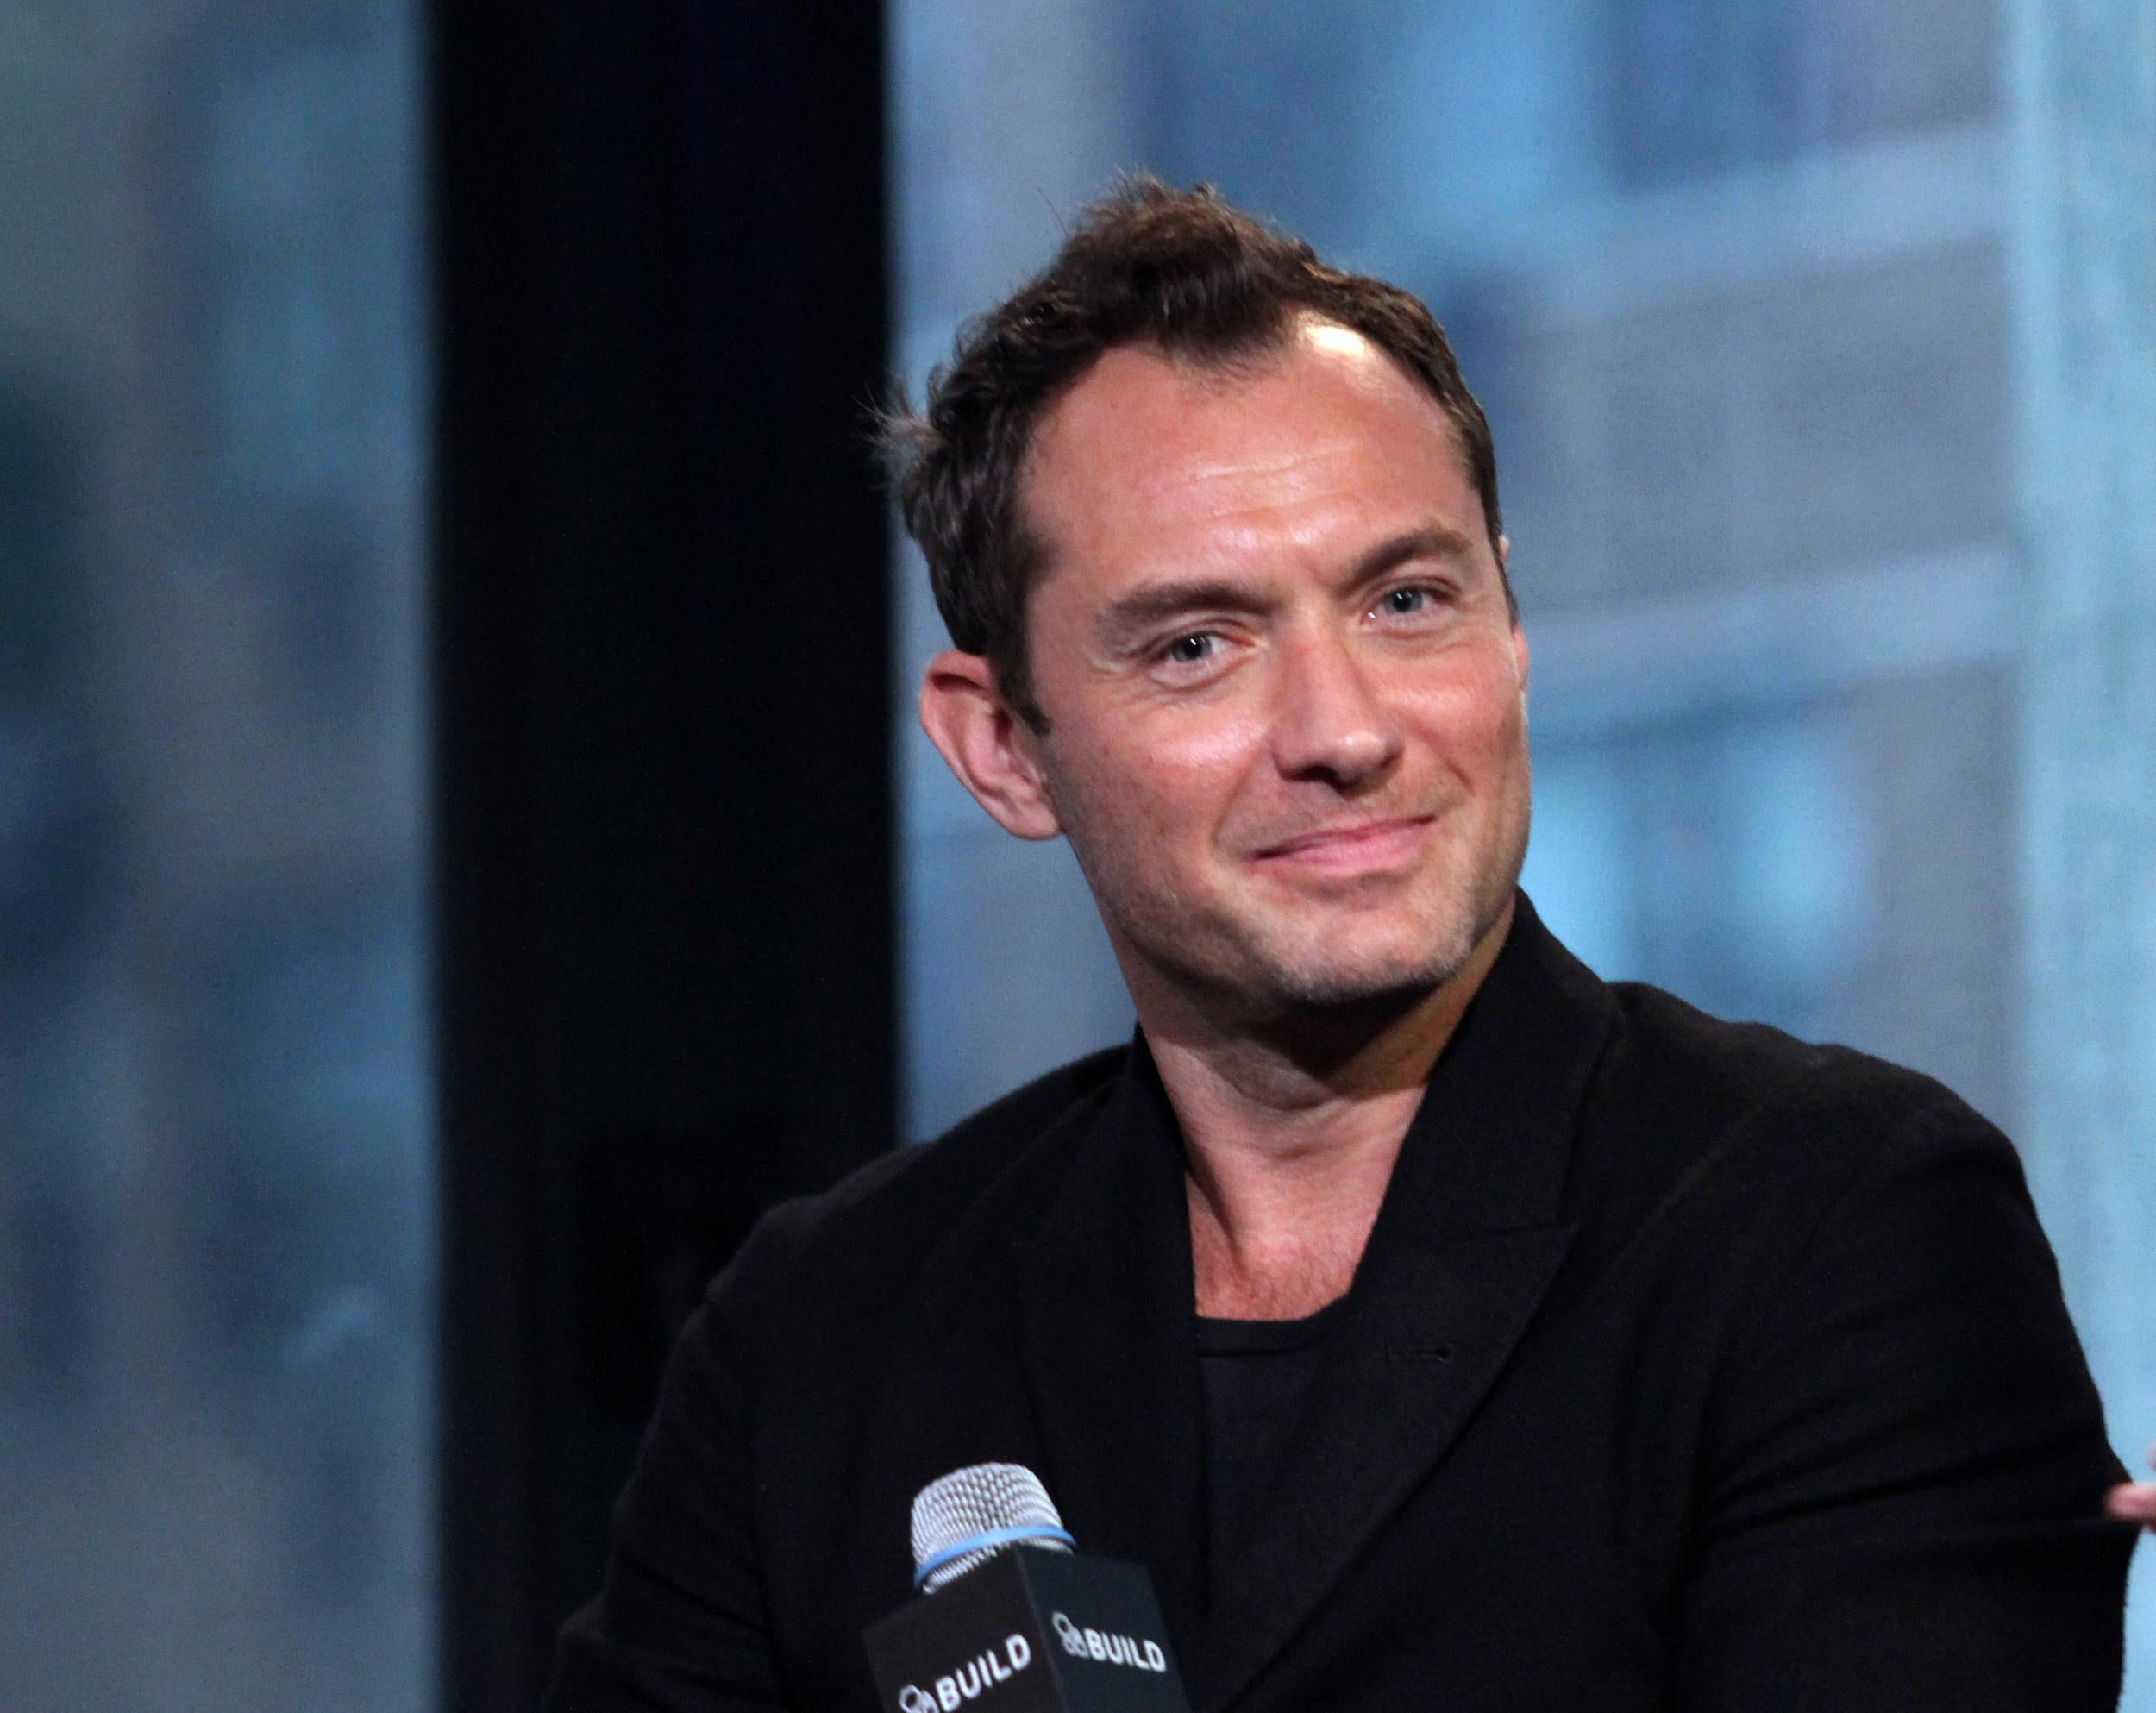 Jude Law Turned Down Superman Because He Hated Wearing The